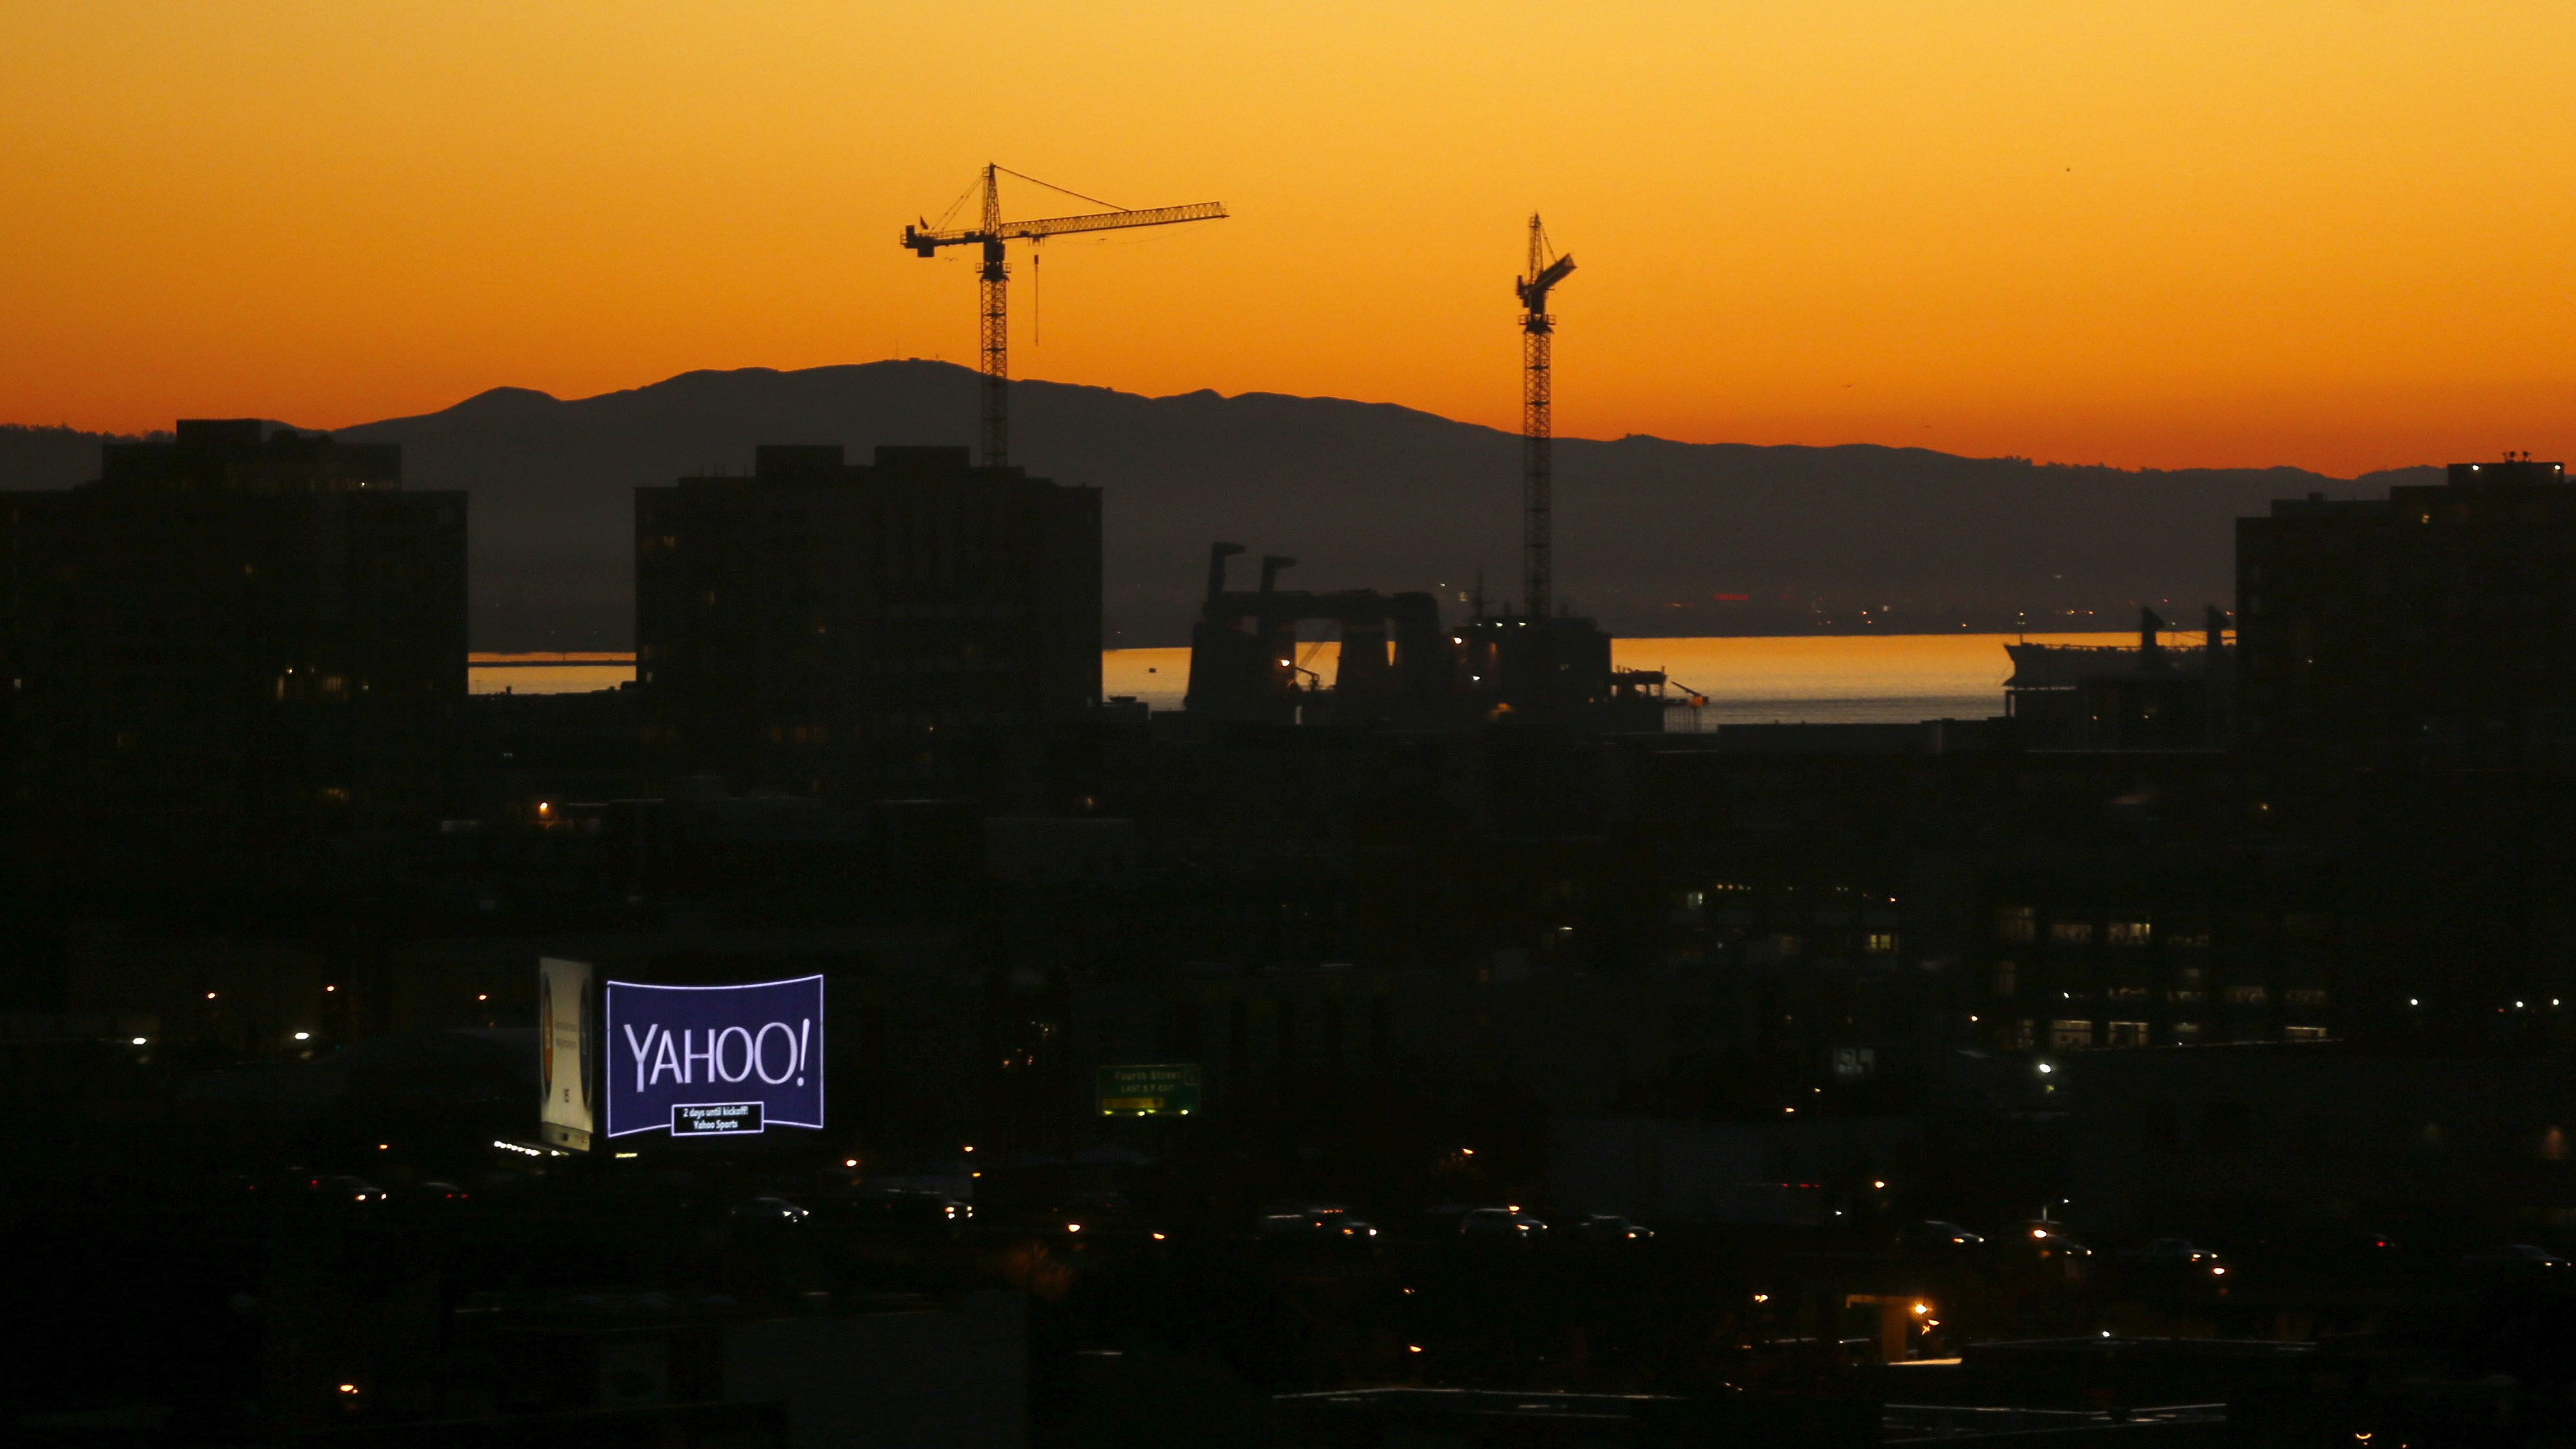 A sign advertising the internet company Yahoo is pictured at sun rise in down town San Francisco